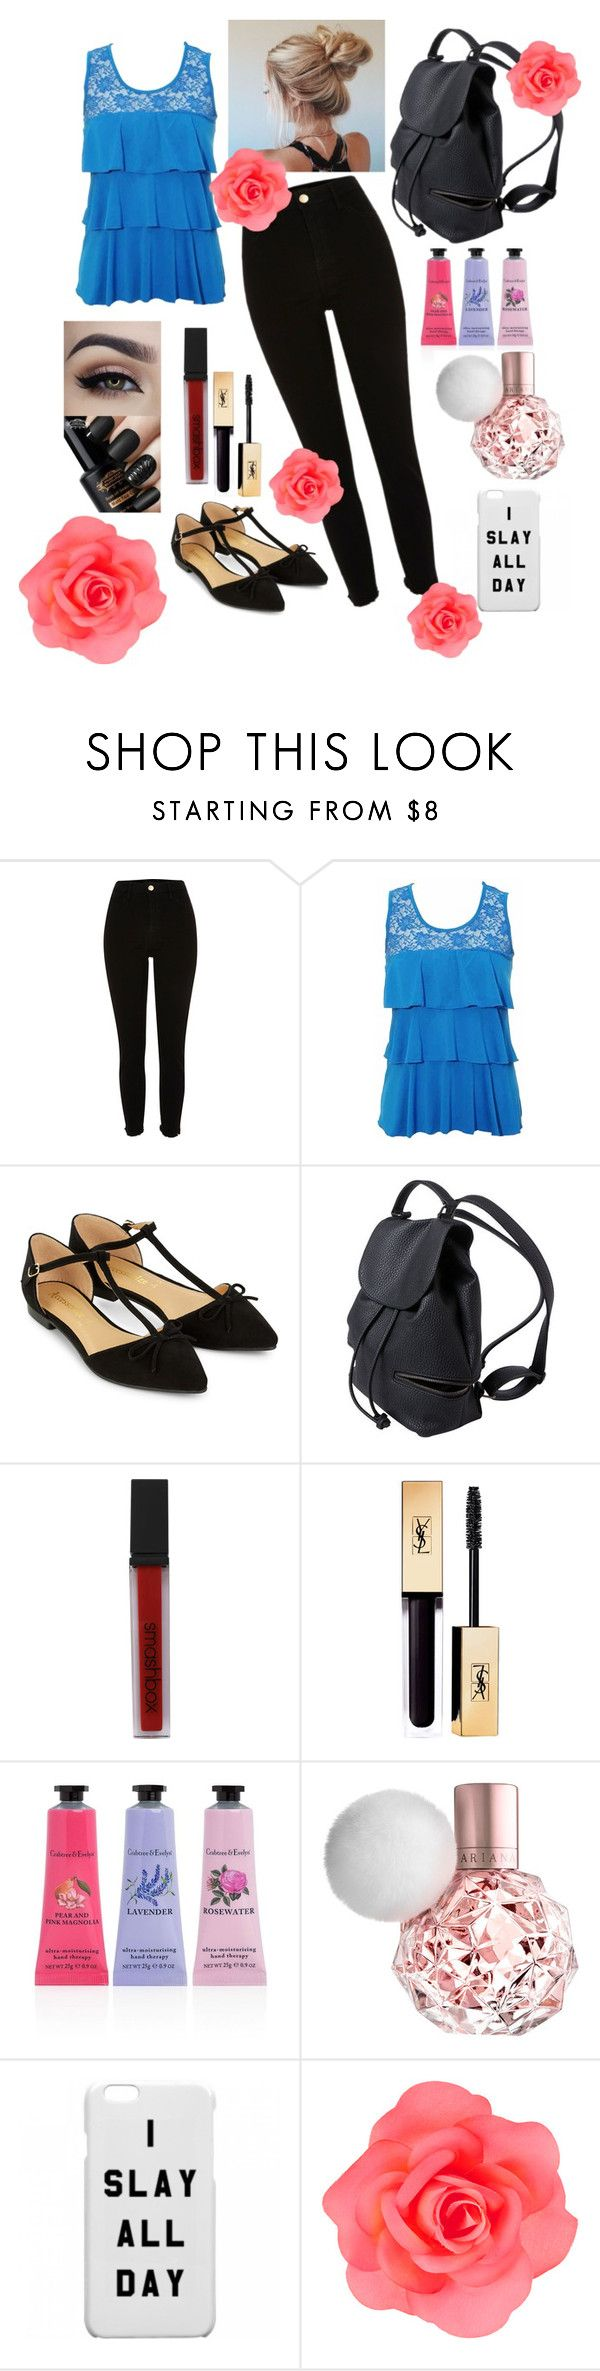 """Blue and Black"" by kaylamh2000 ❤ liked on Polyvore featuring River Island, Accessorize, Smashbox and Crabtree & Evelyn"